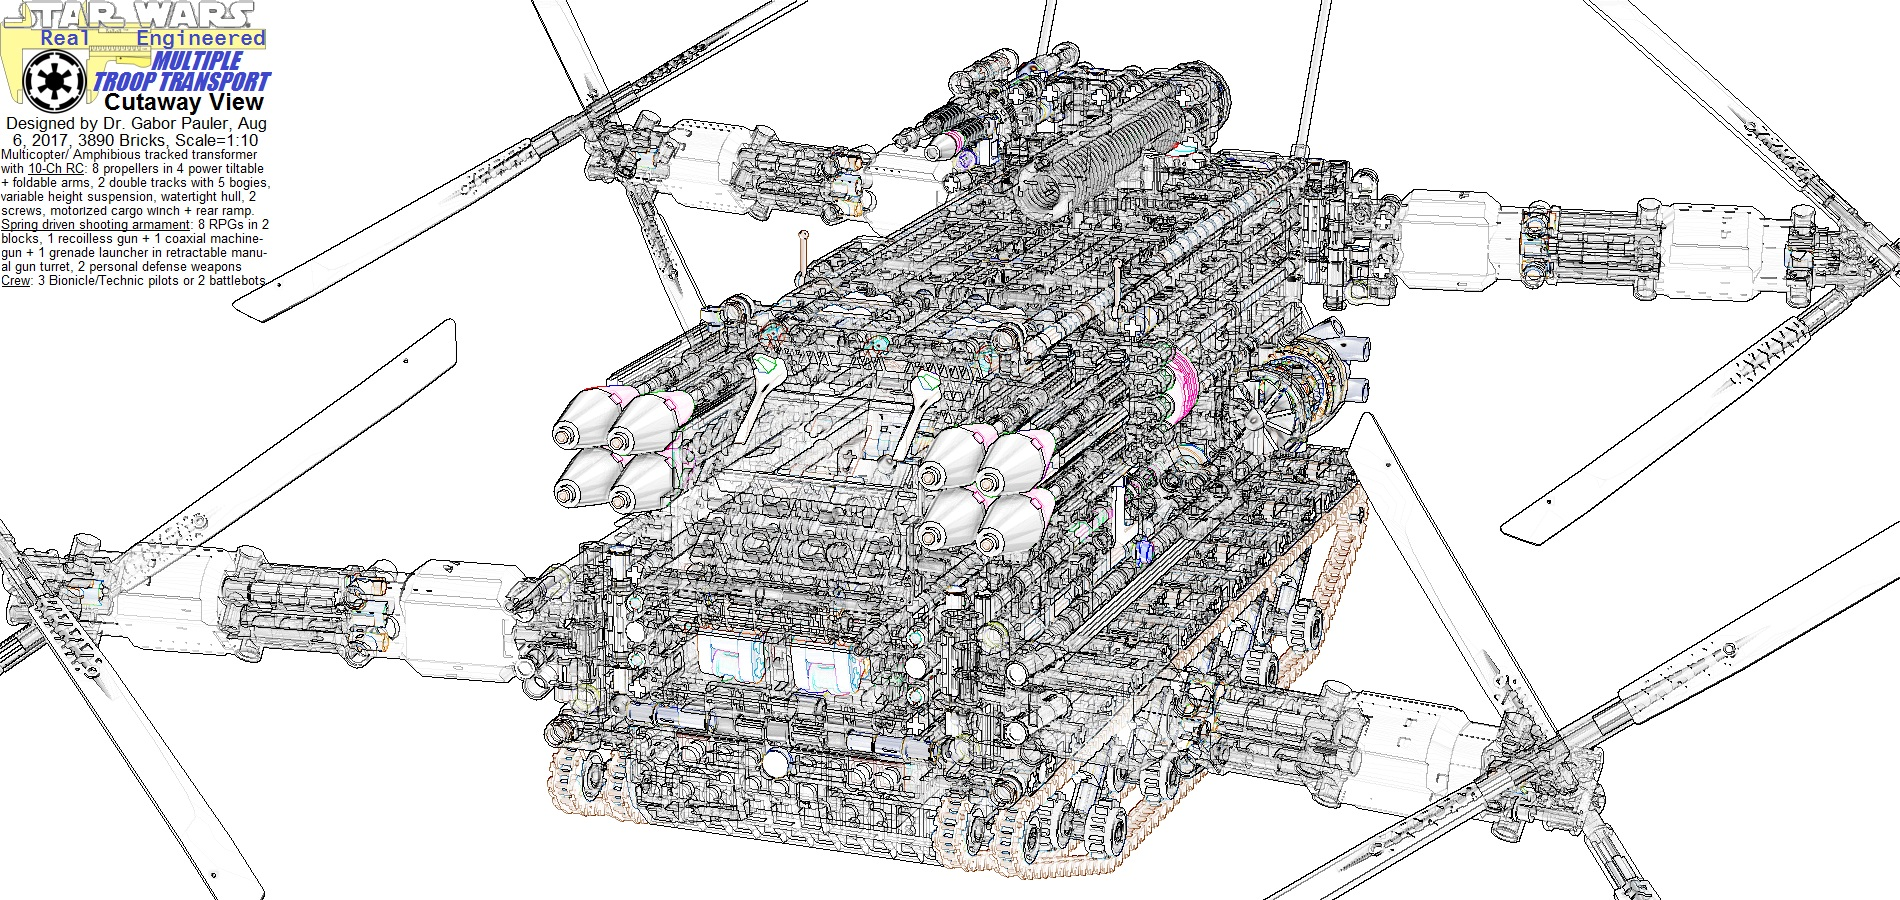 Multiple Troop Transport cutaway view